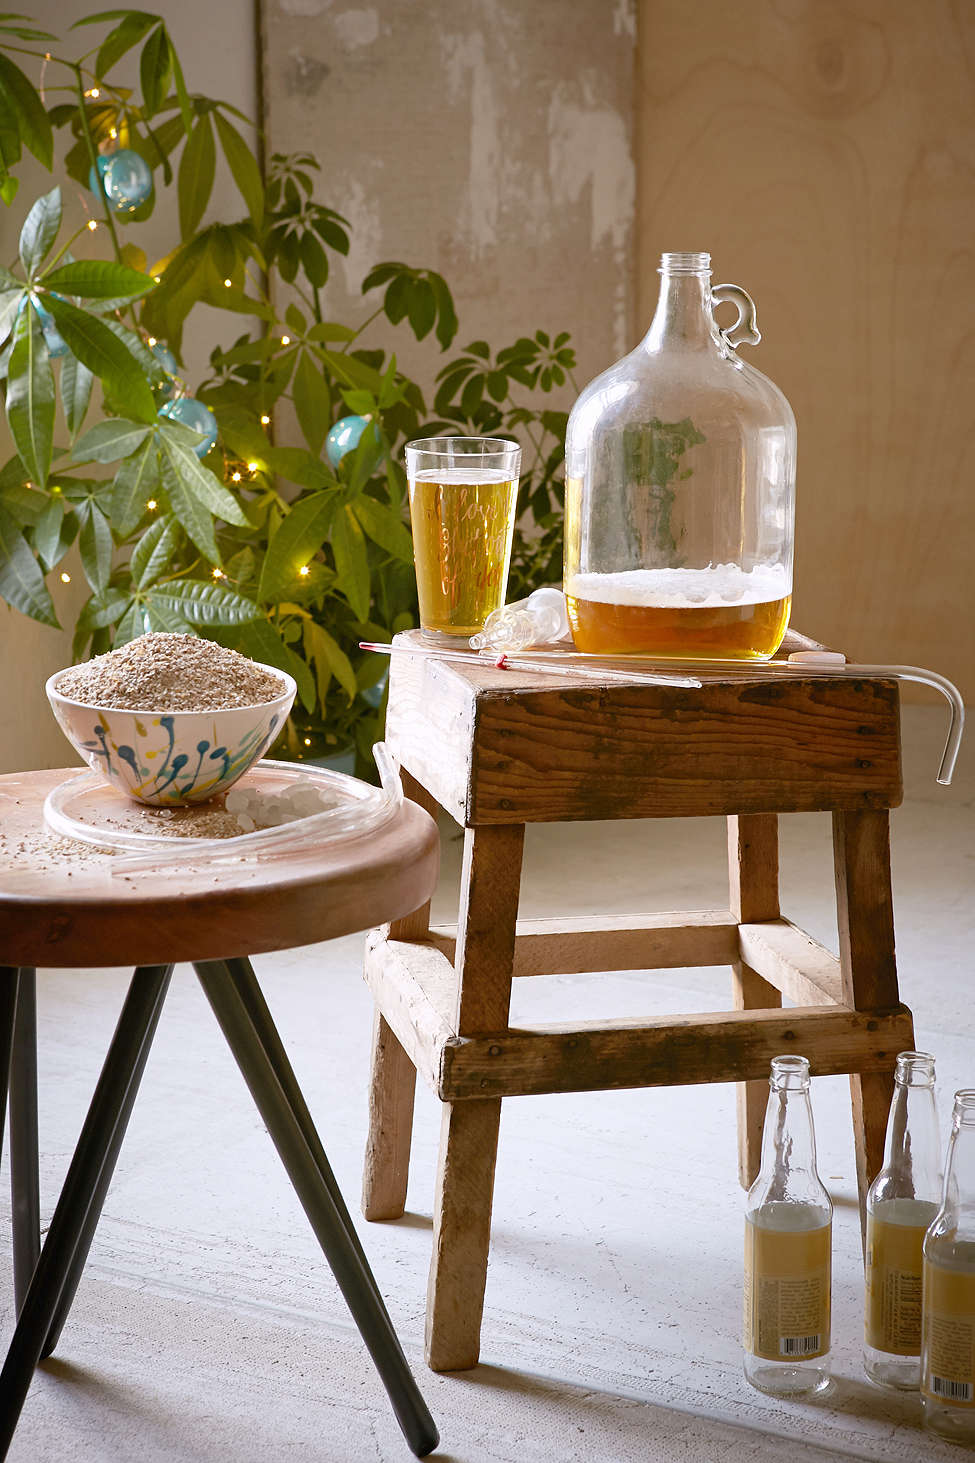 Urban Outfitters Beer Making Kit - $50